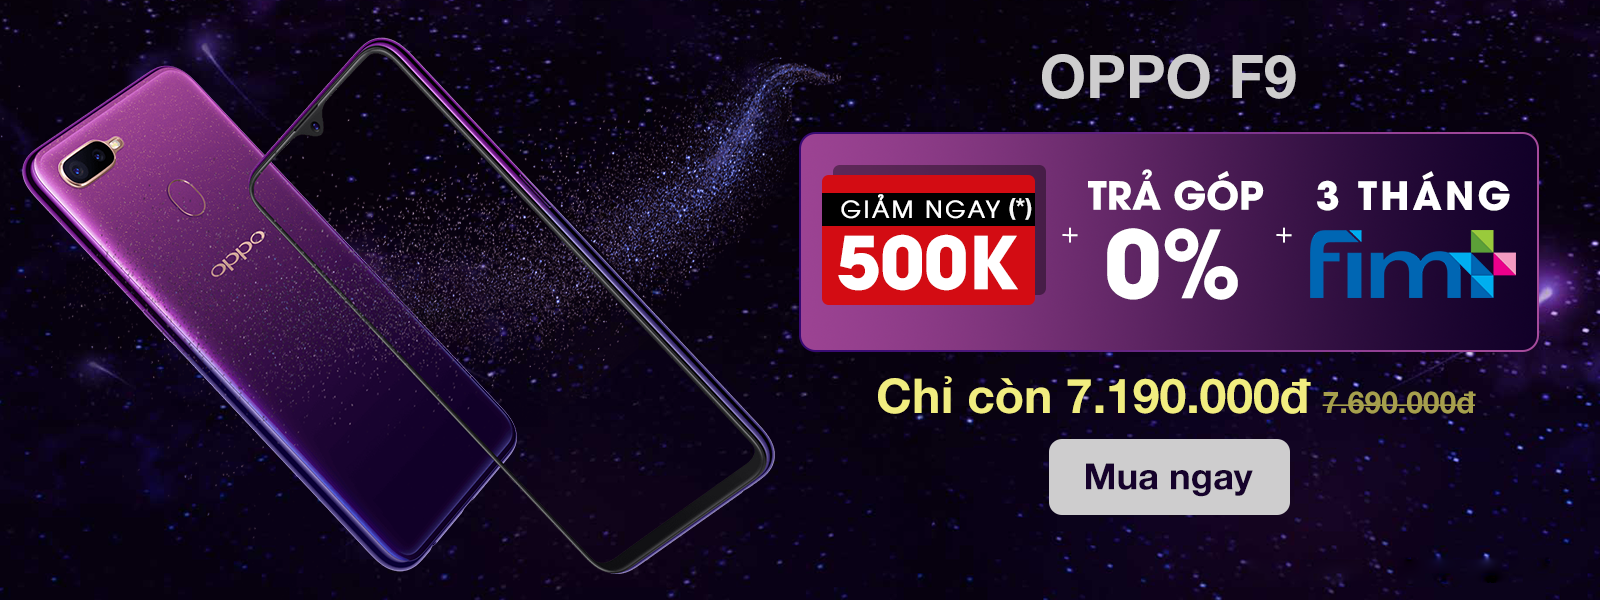 OPPO - IPB - Hot sales - OPPO F9 - 2018 Dec- H1